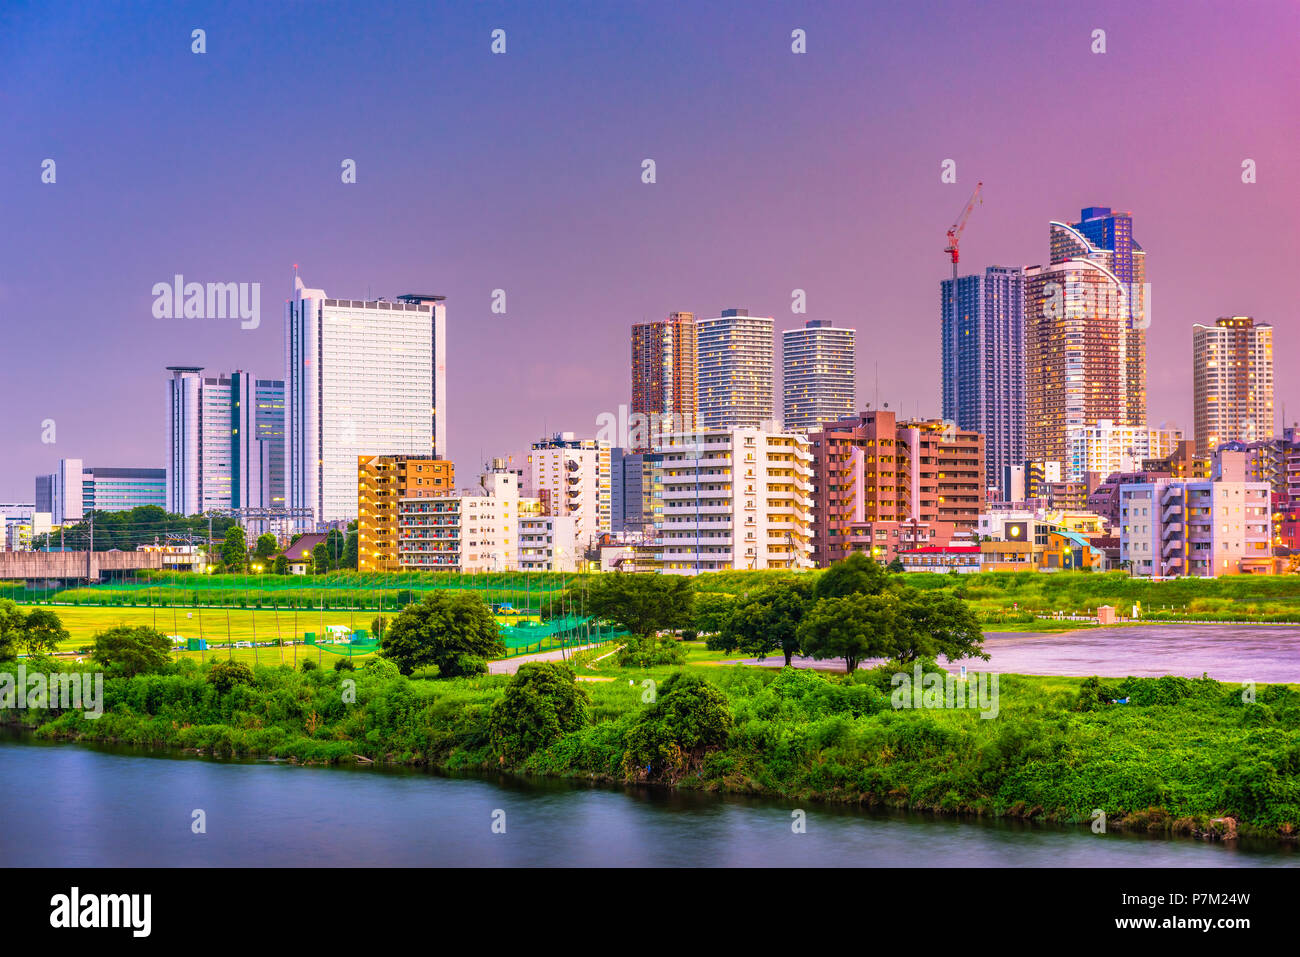 Kawasaki, Japan city skyline at dusk on the Tamagawa River. Stock Photo